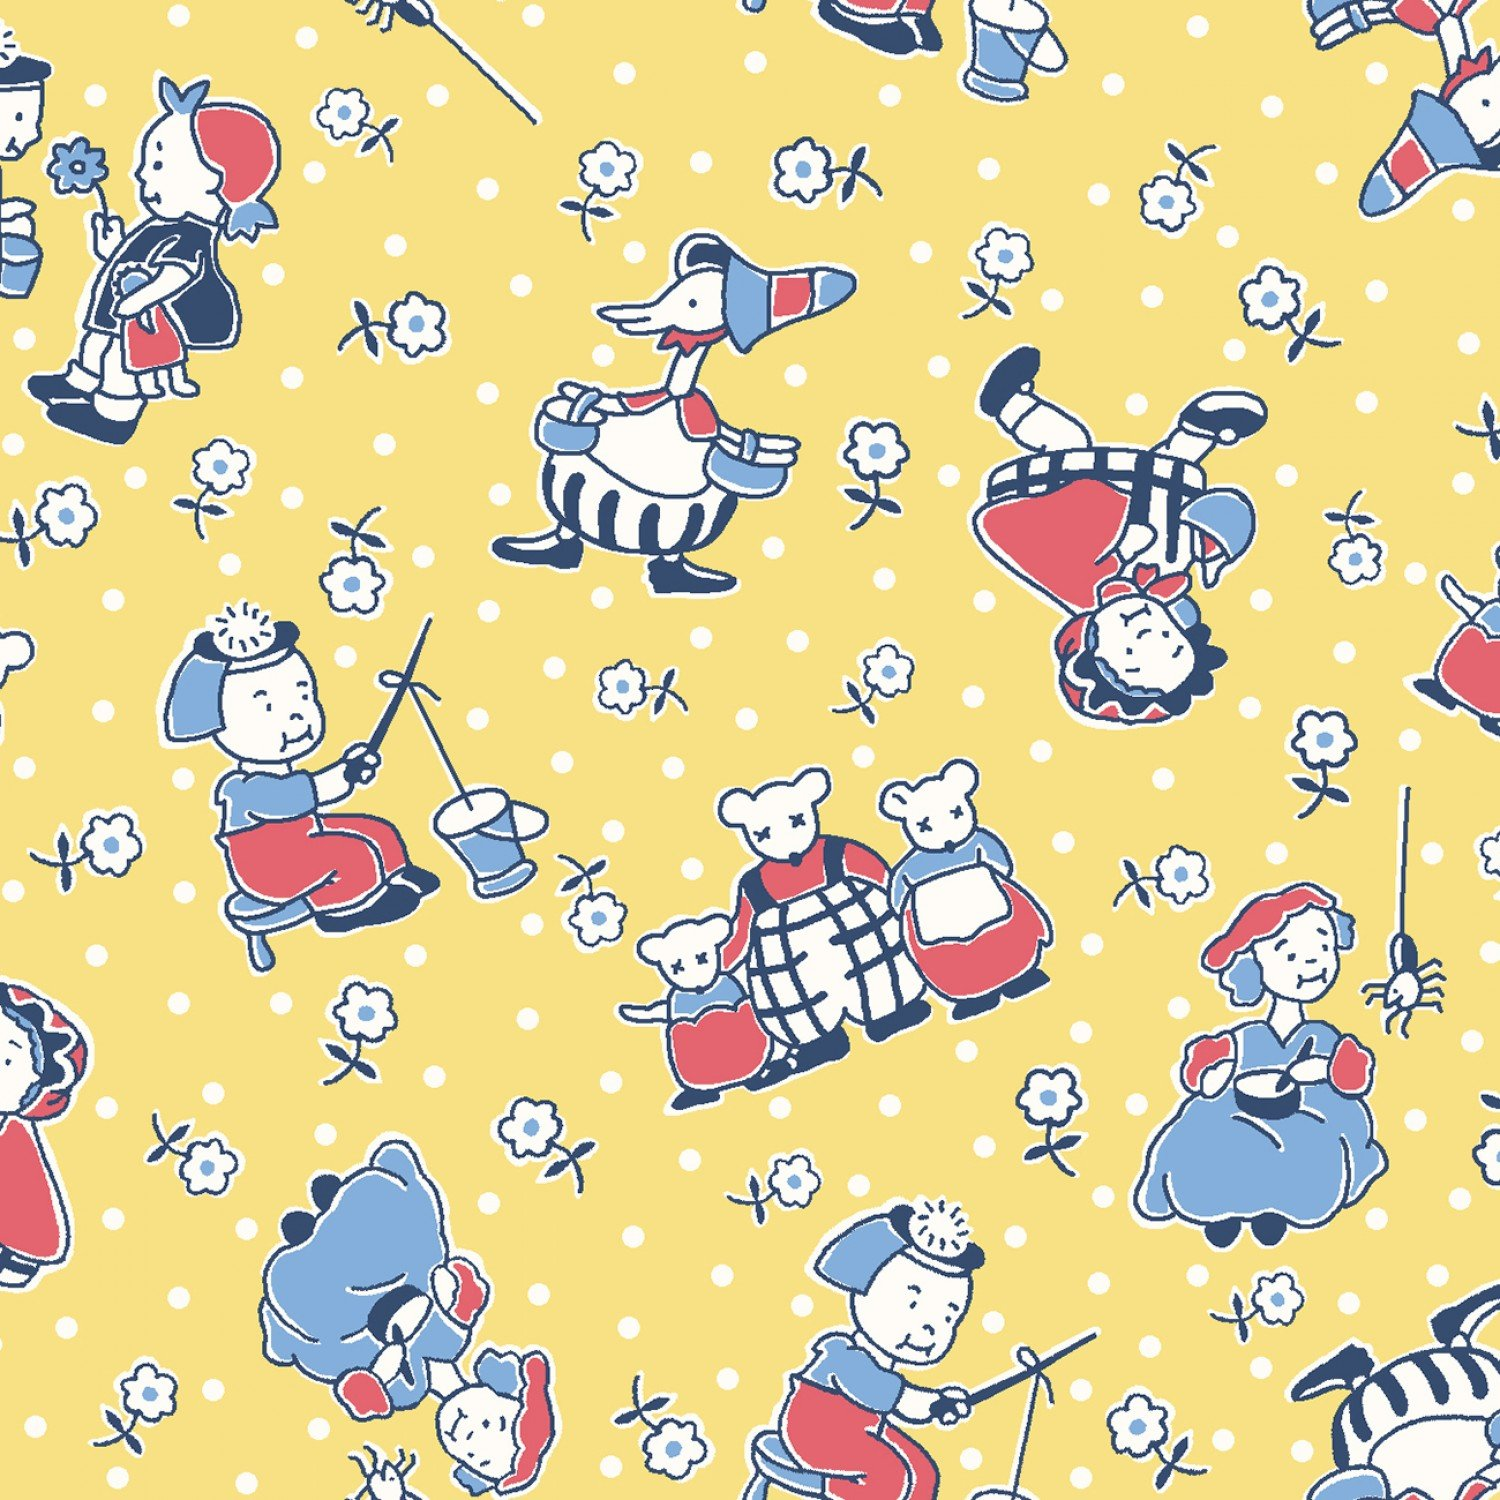 Mother Goose Nursery Rhymes Children's Fabric from Story Time Fabric Collection